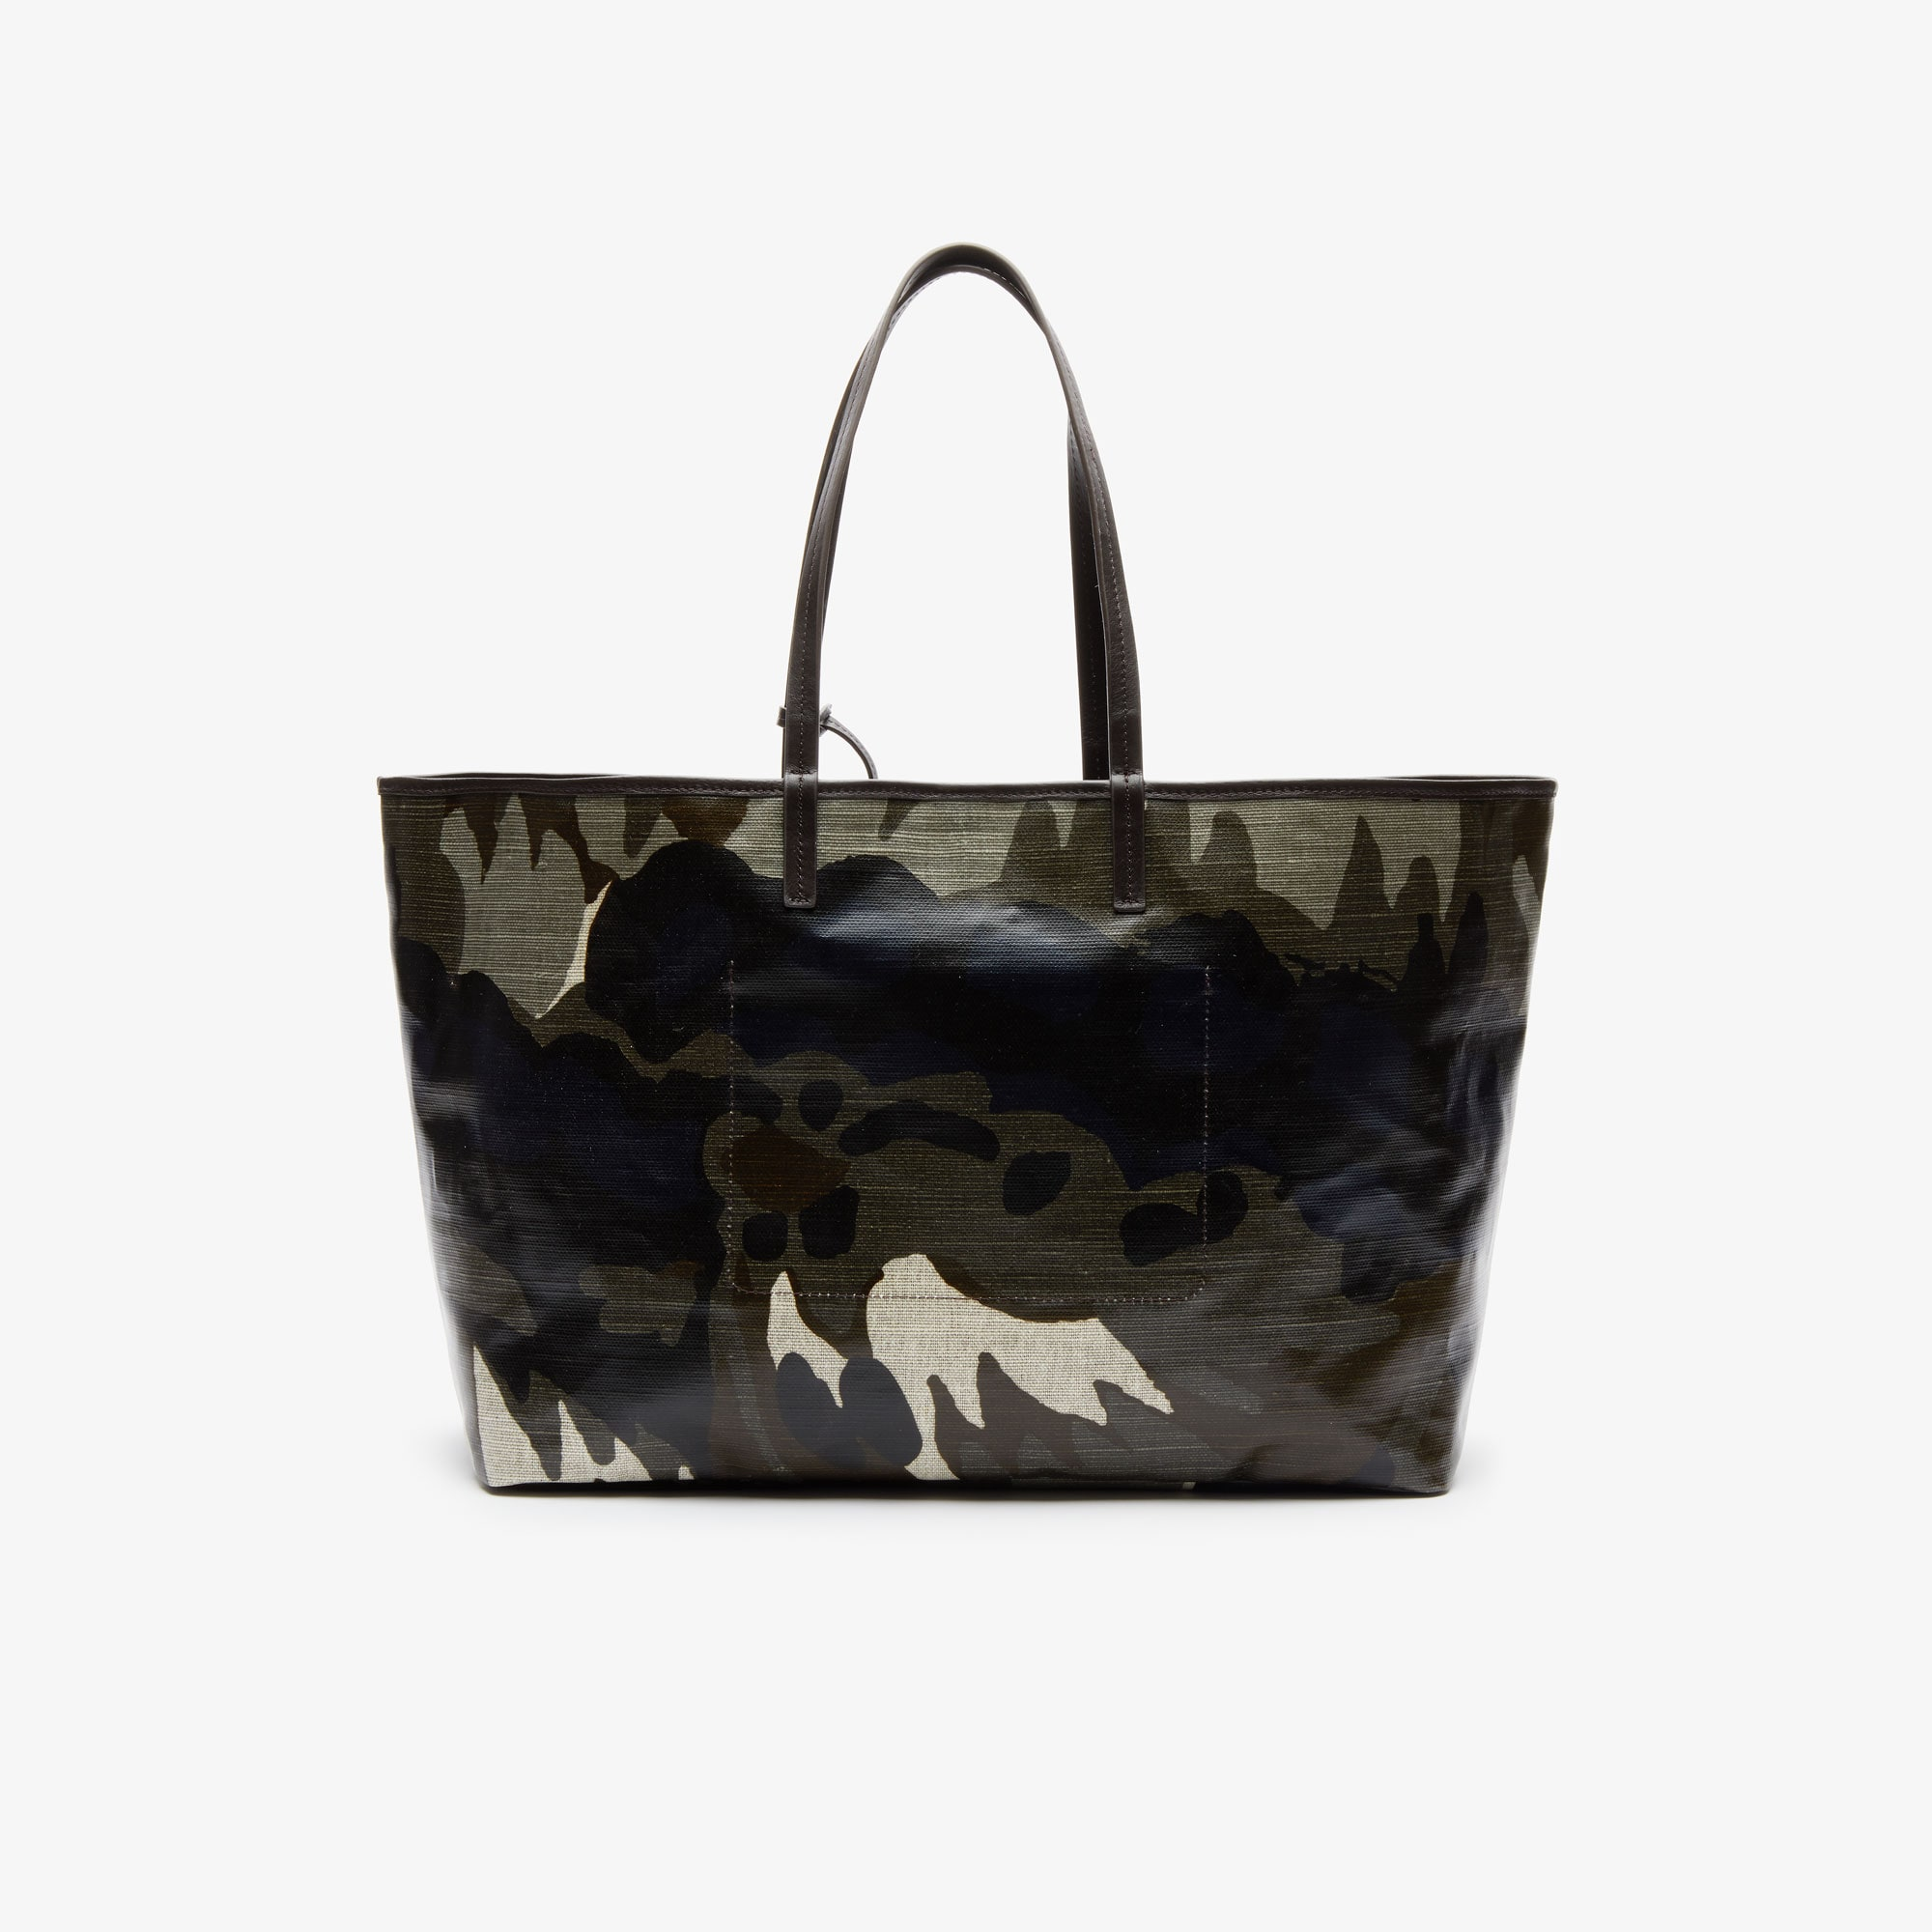 Women's Robert George Large Coated Print Canvas Tote Bag